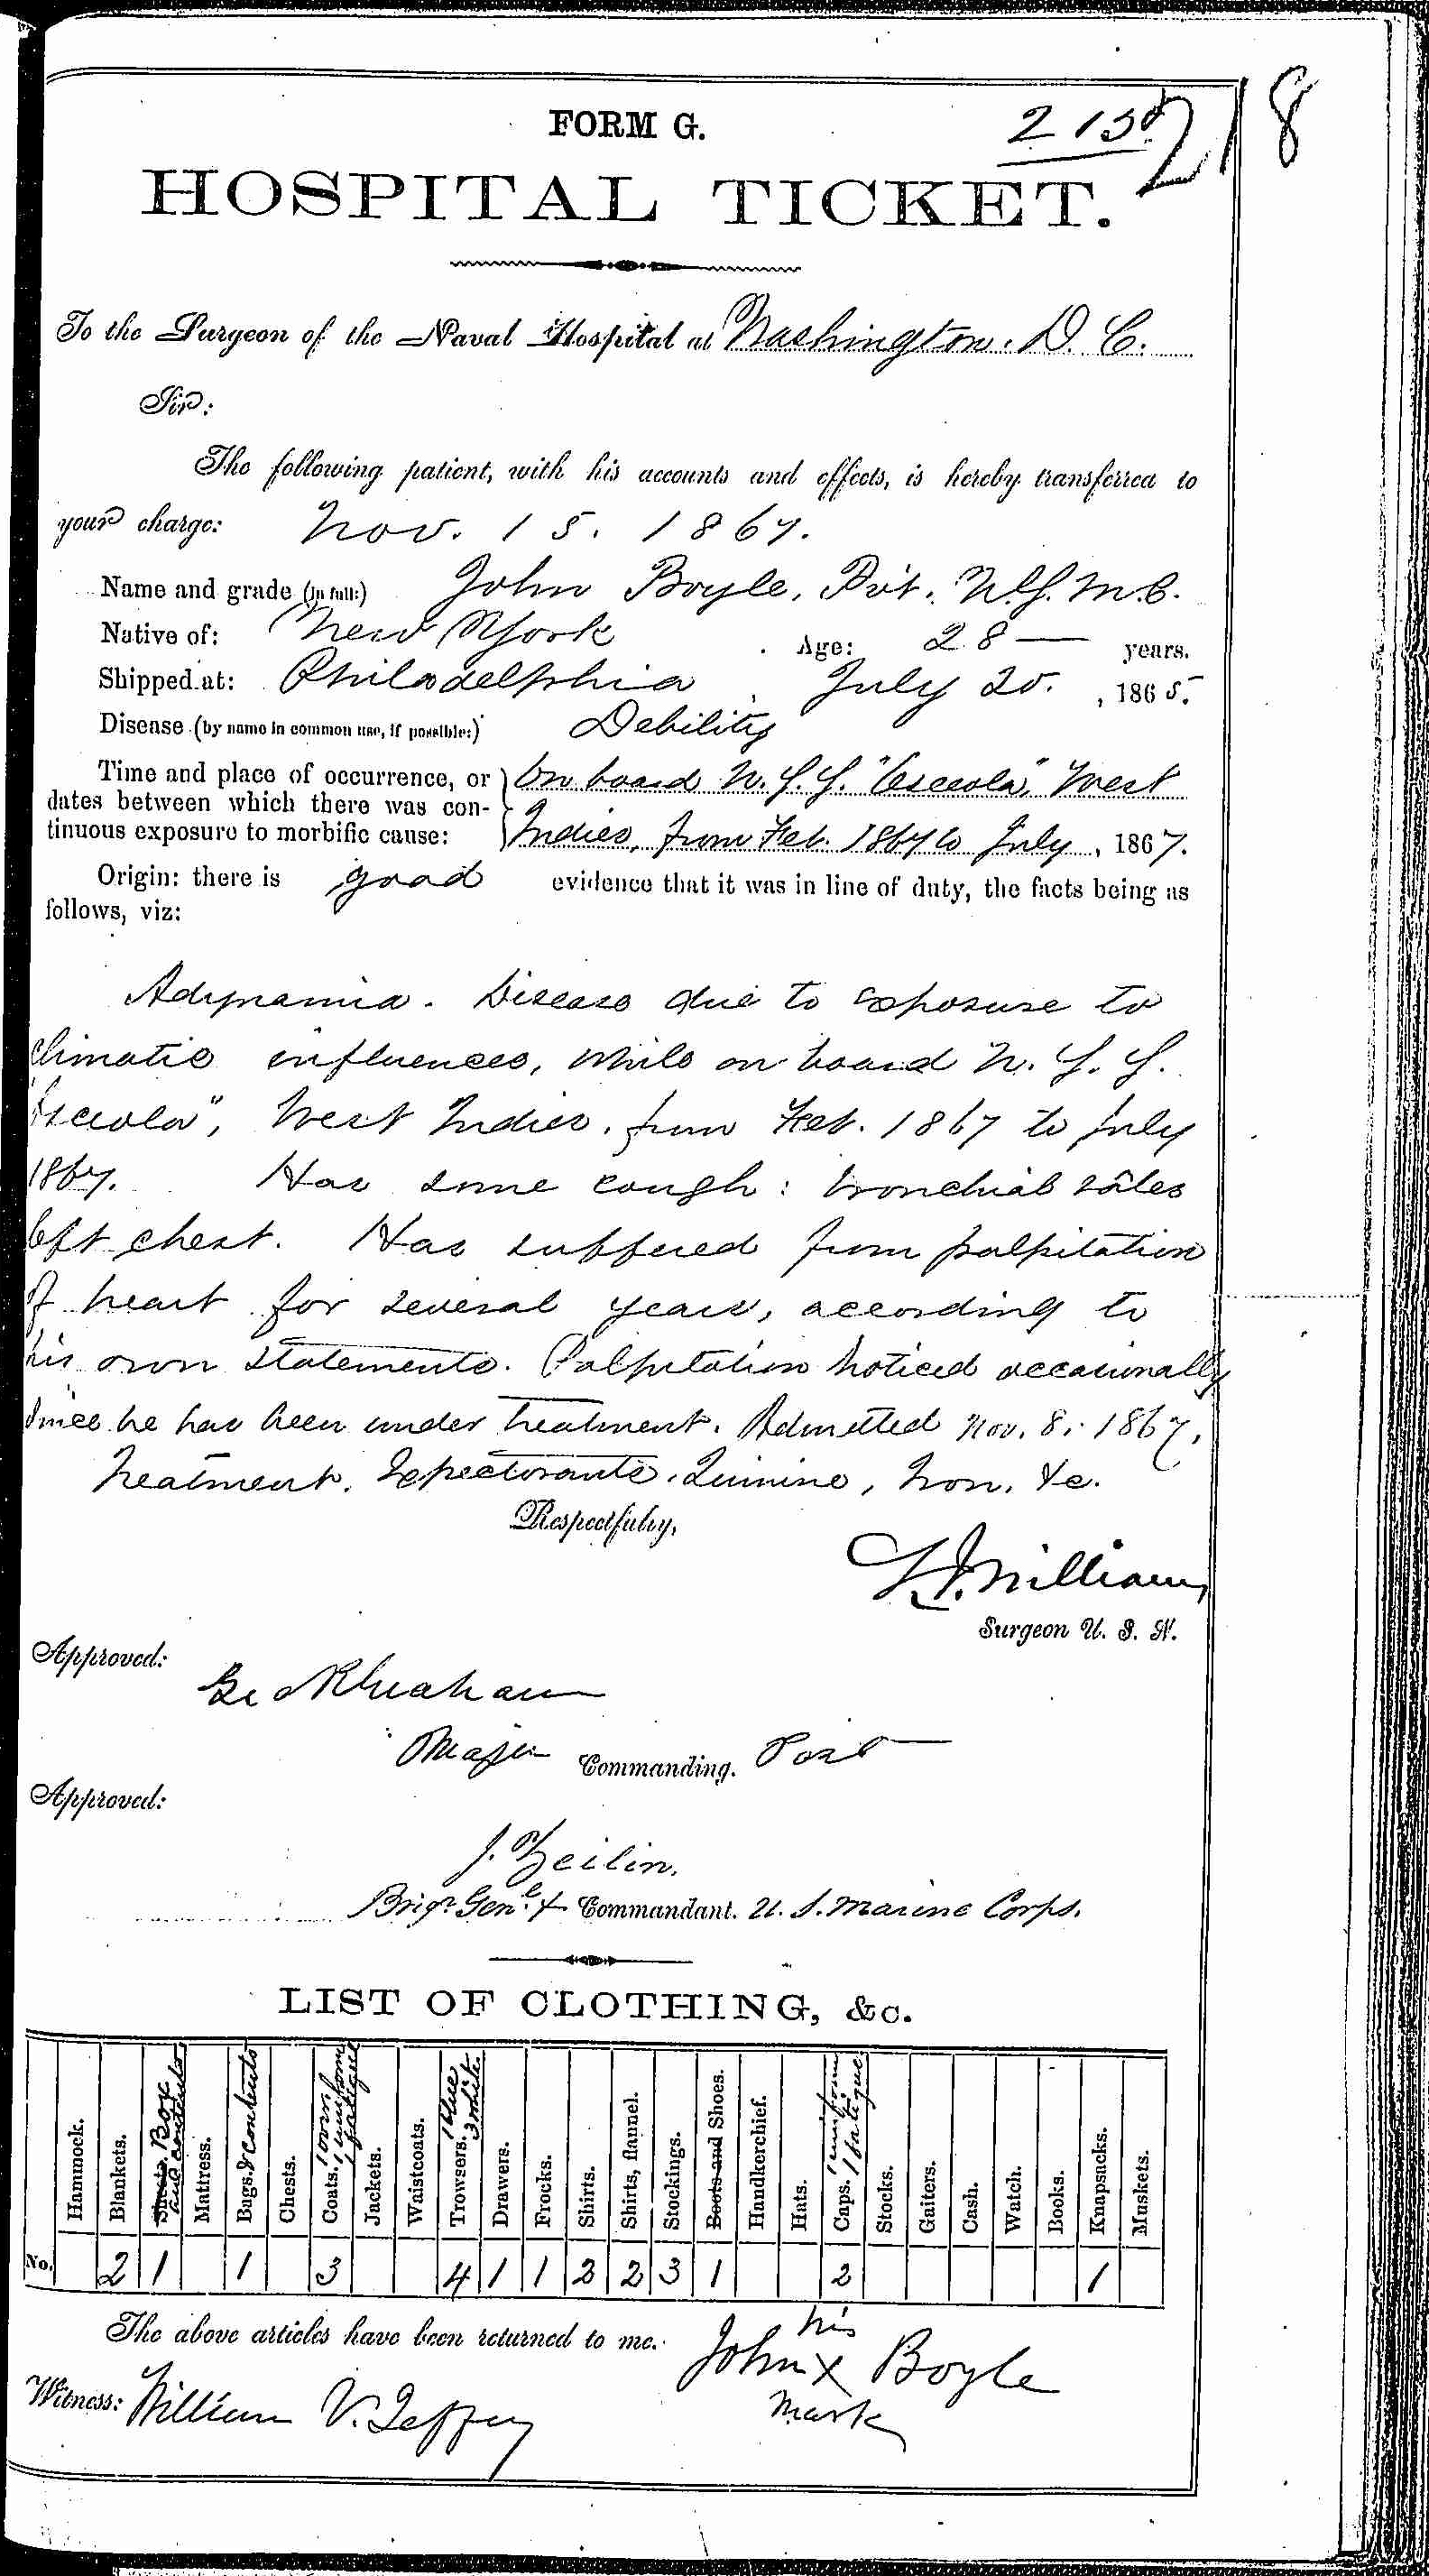 Entry for John Boyle (page 1 of 2) in the log Hospital Tickets and Case Papers - Naval Hospital - Washington, D.C. - 1866-68